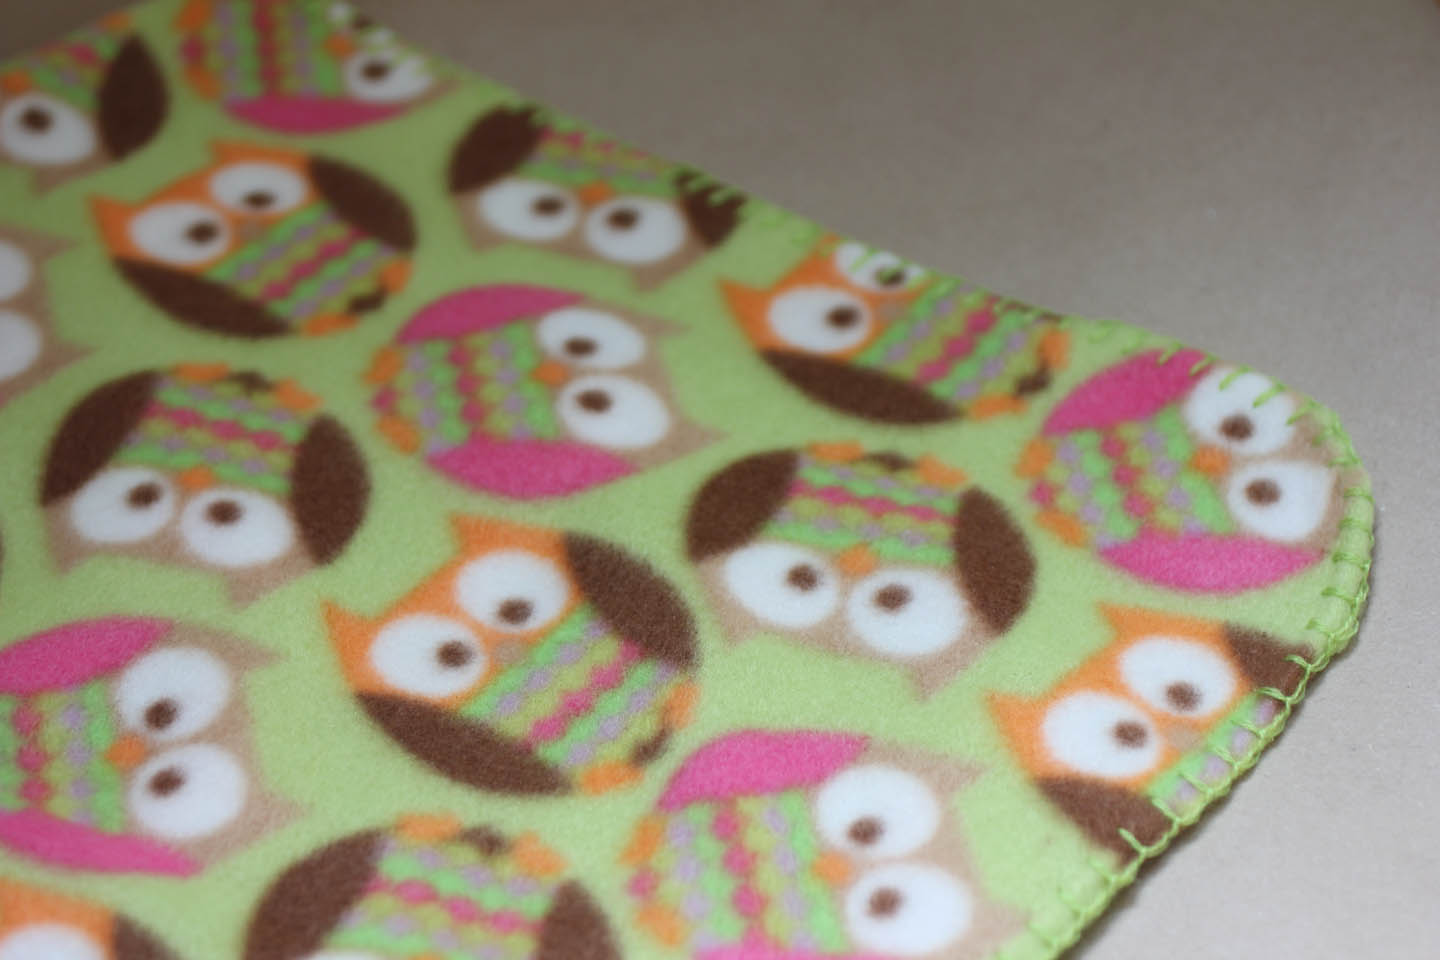 project linus blankets Baby blanket tutorial - baby shower gift idea i need a sewing machine find this pin and more on project linus by lauraheanes easy baby blanket tutorial- minky blanket w/ rounded edges.